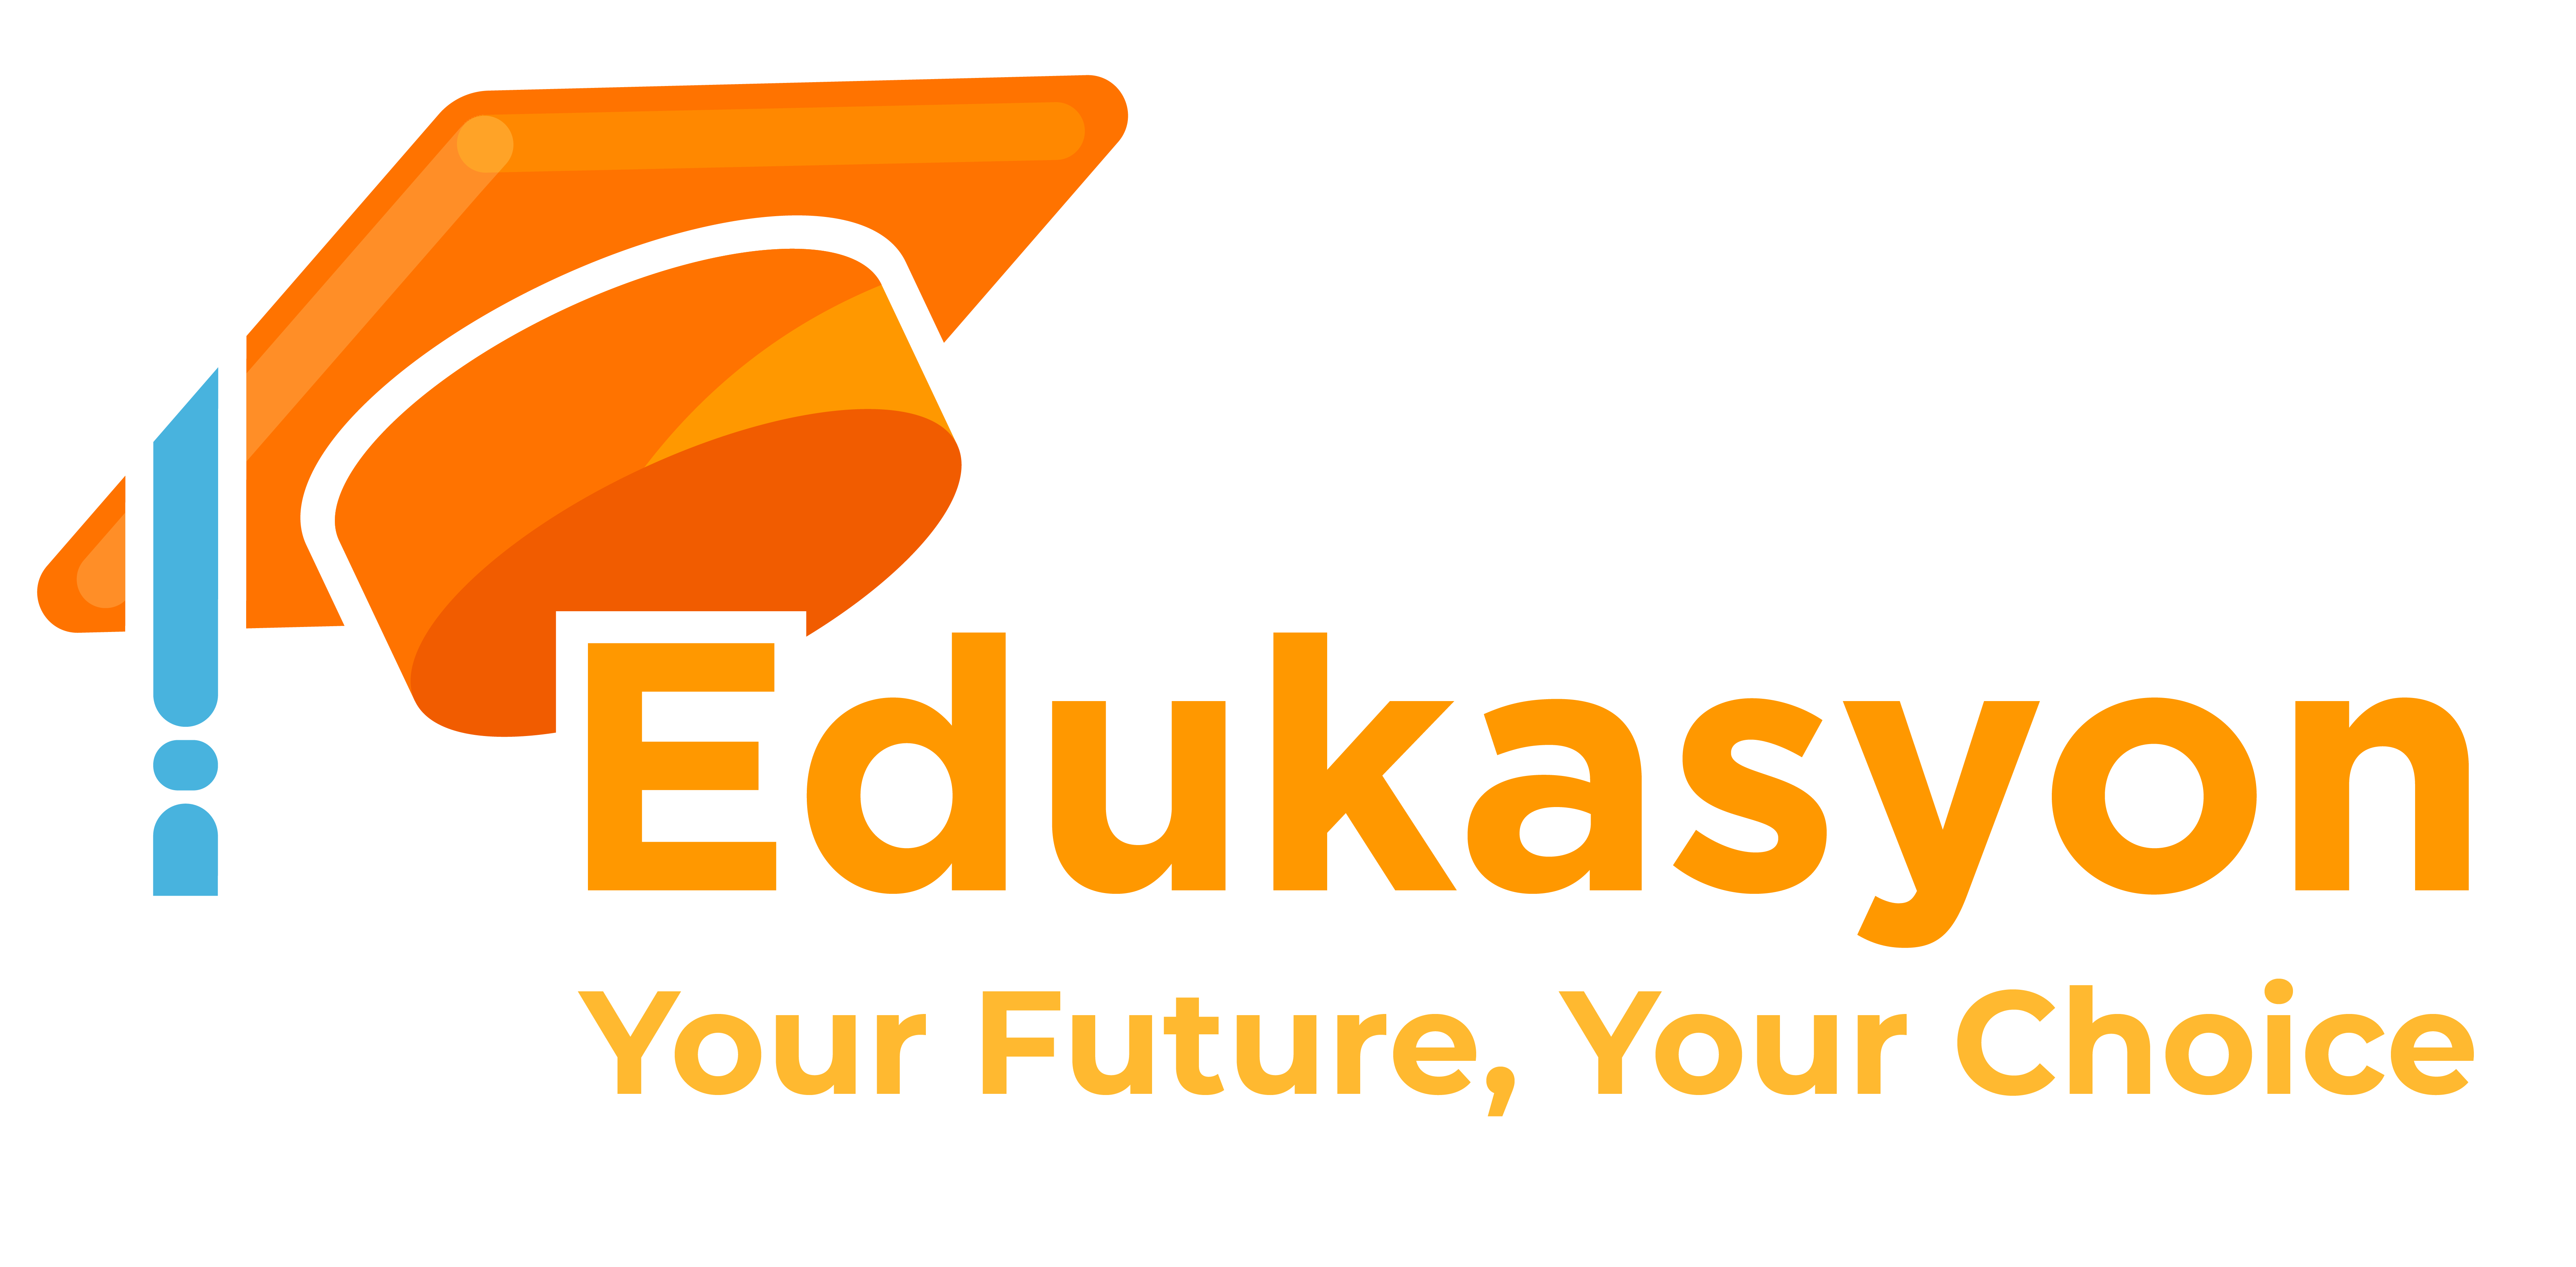 Register with Edukasyon.ph